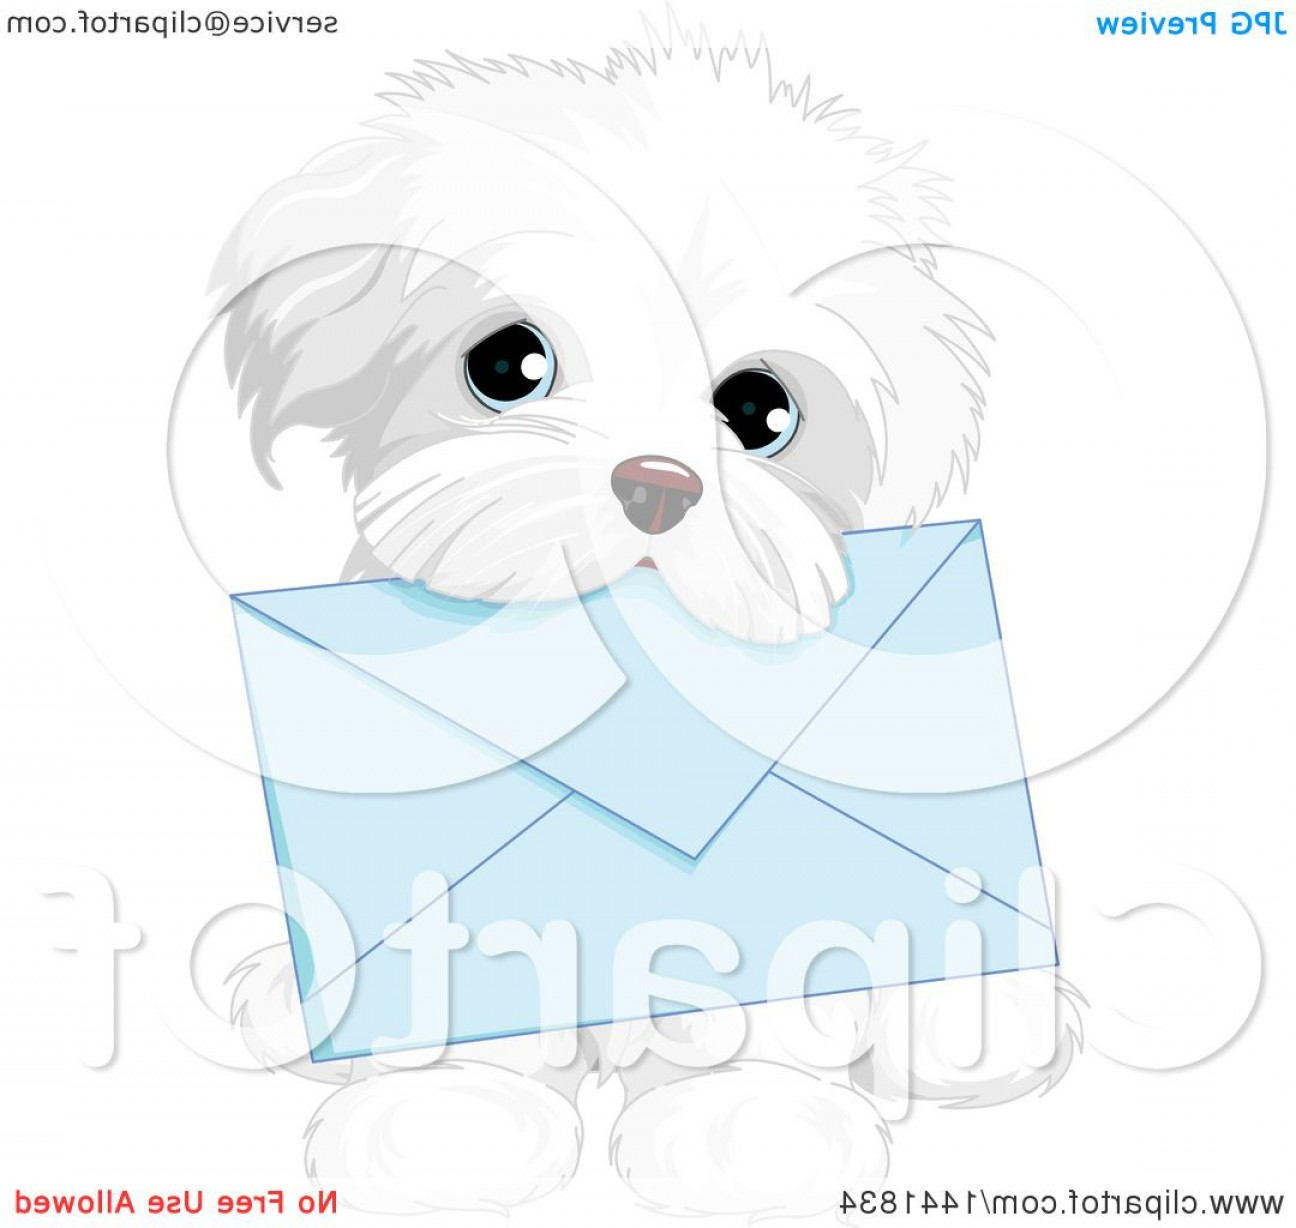 Shih Tzu Vector Siluete: Cute White Shih Tzu Dog Carrying A Blue Envelope In Its Mouth